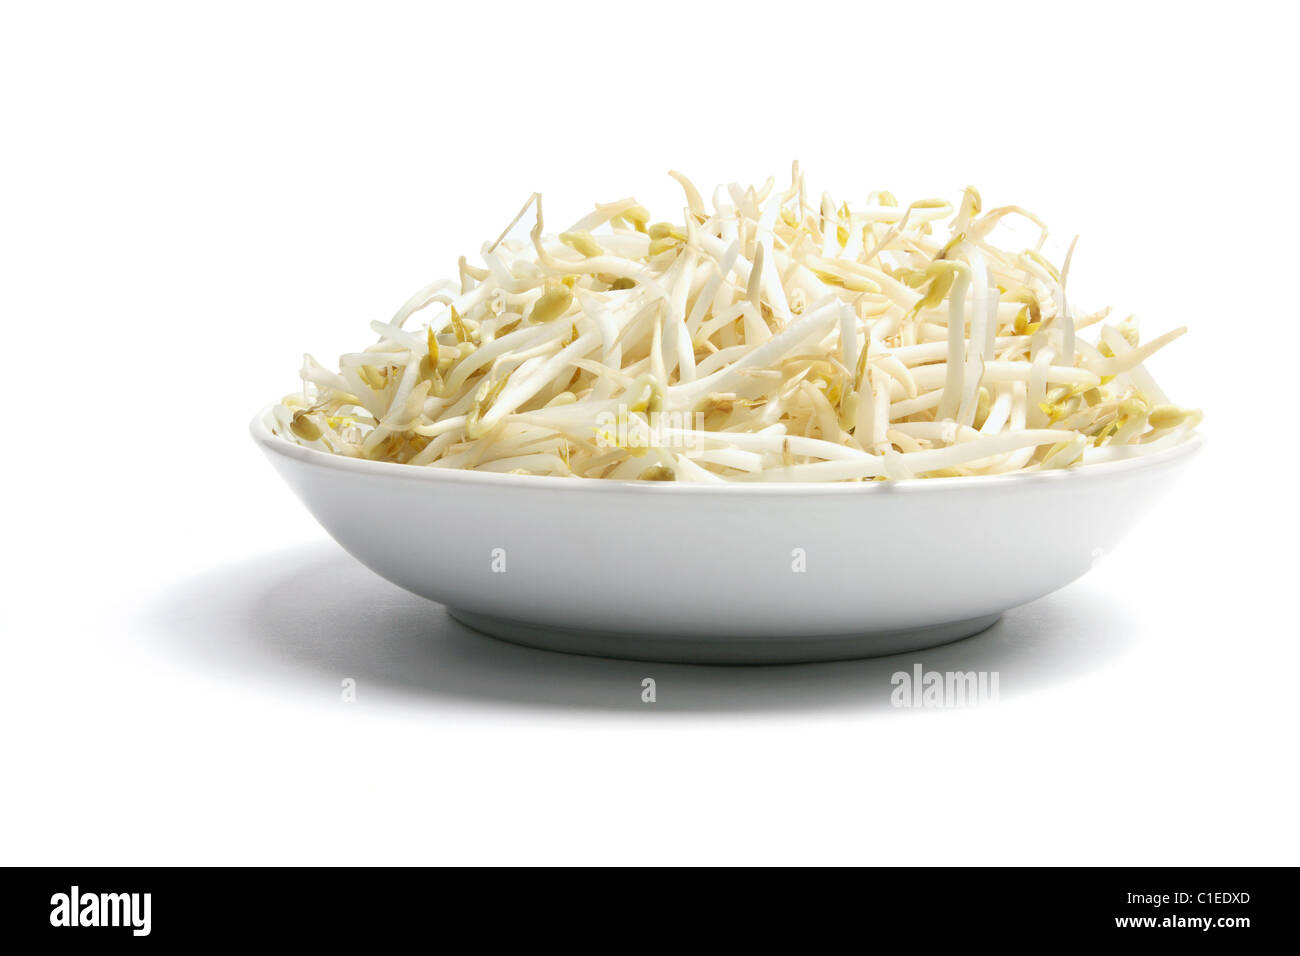 Bowl of Bean Sprouts - Stock Image